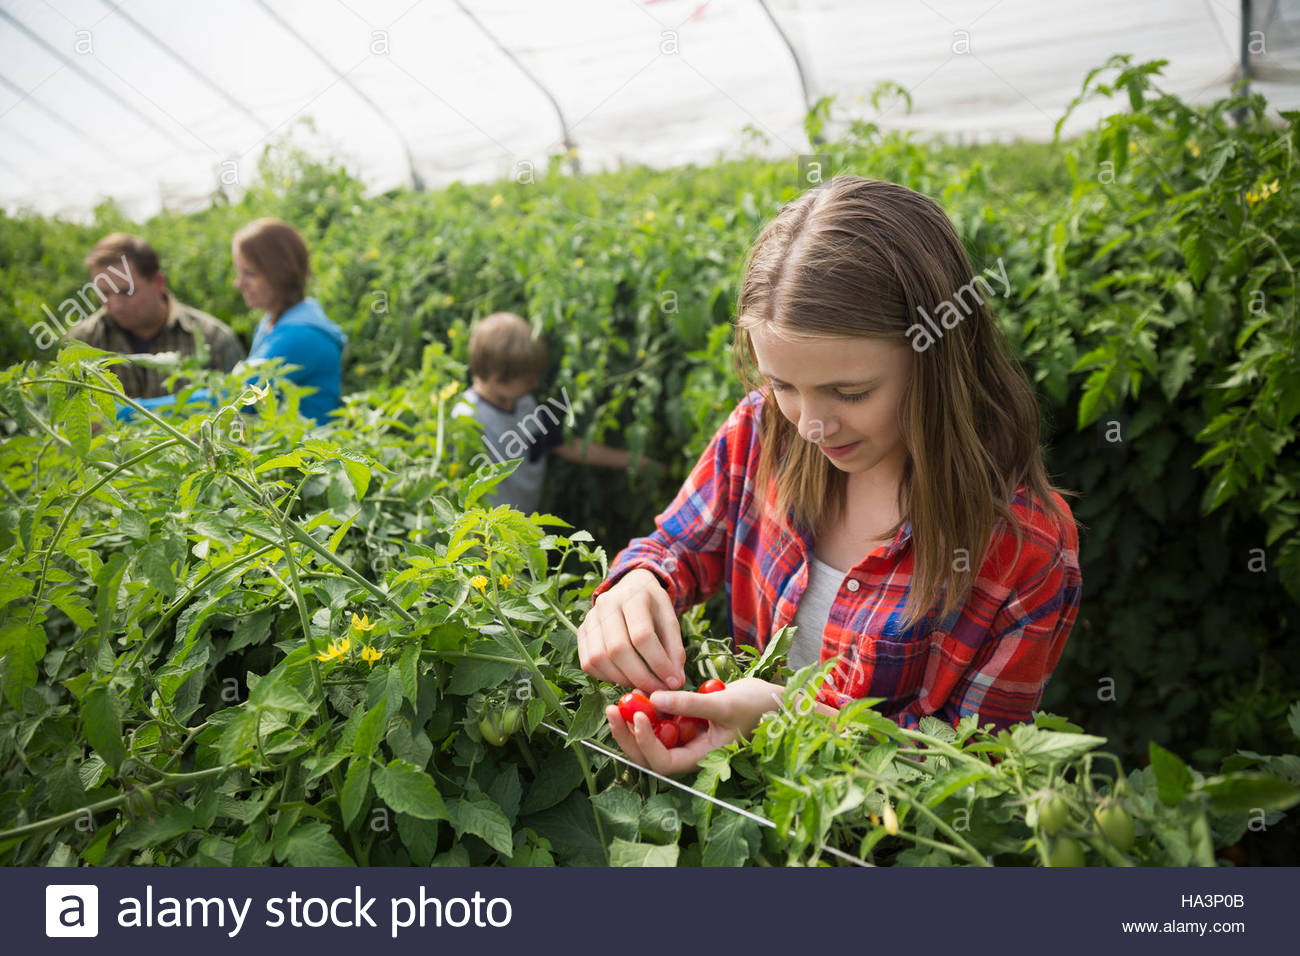 Girl picking tomatoes in greenhouse - Stock Image